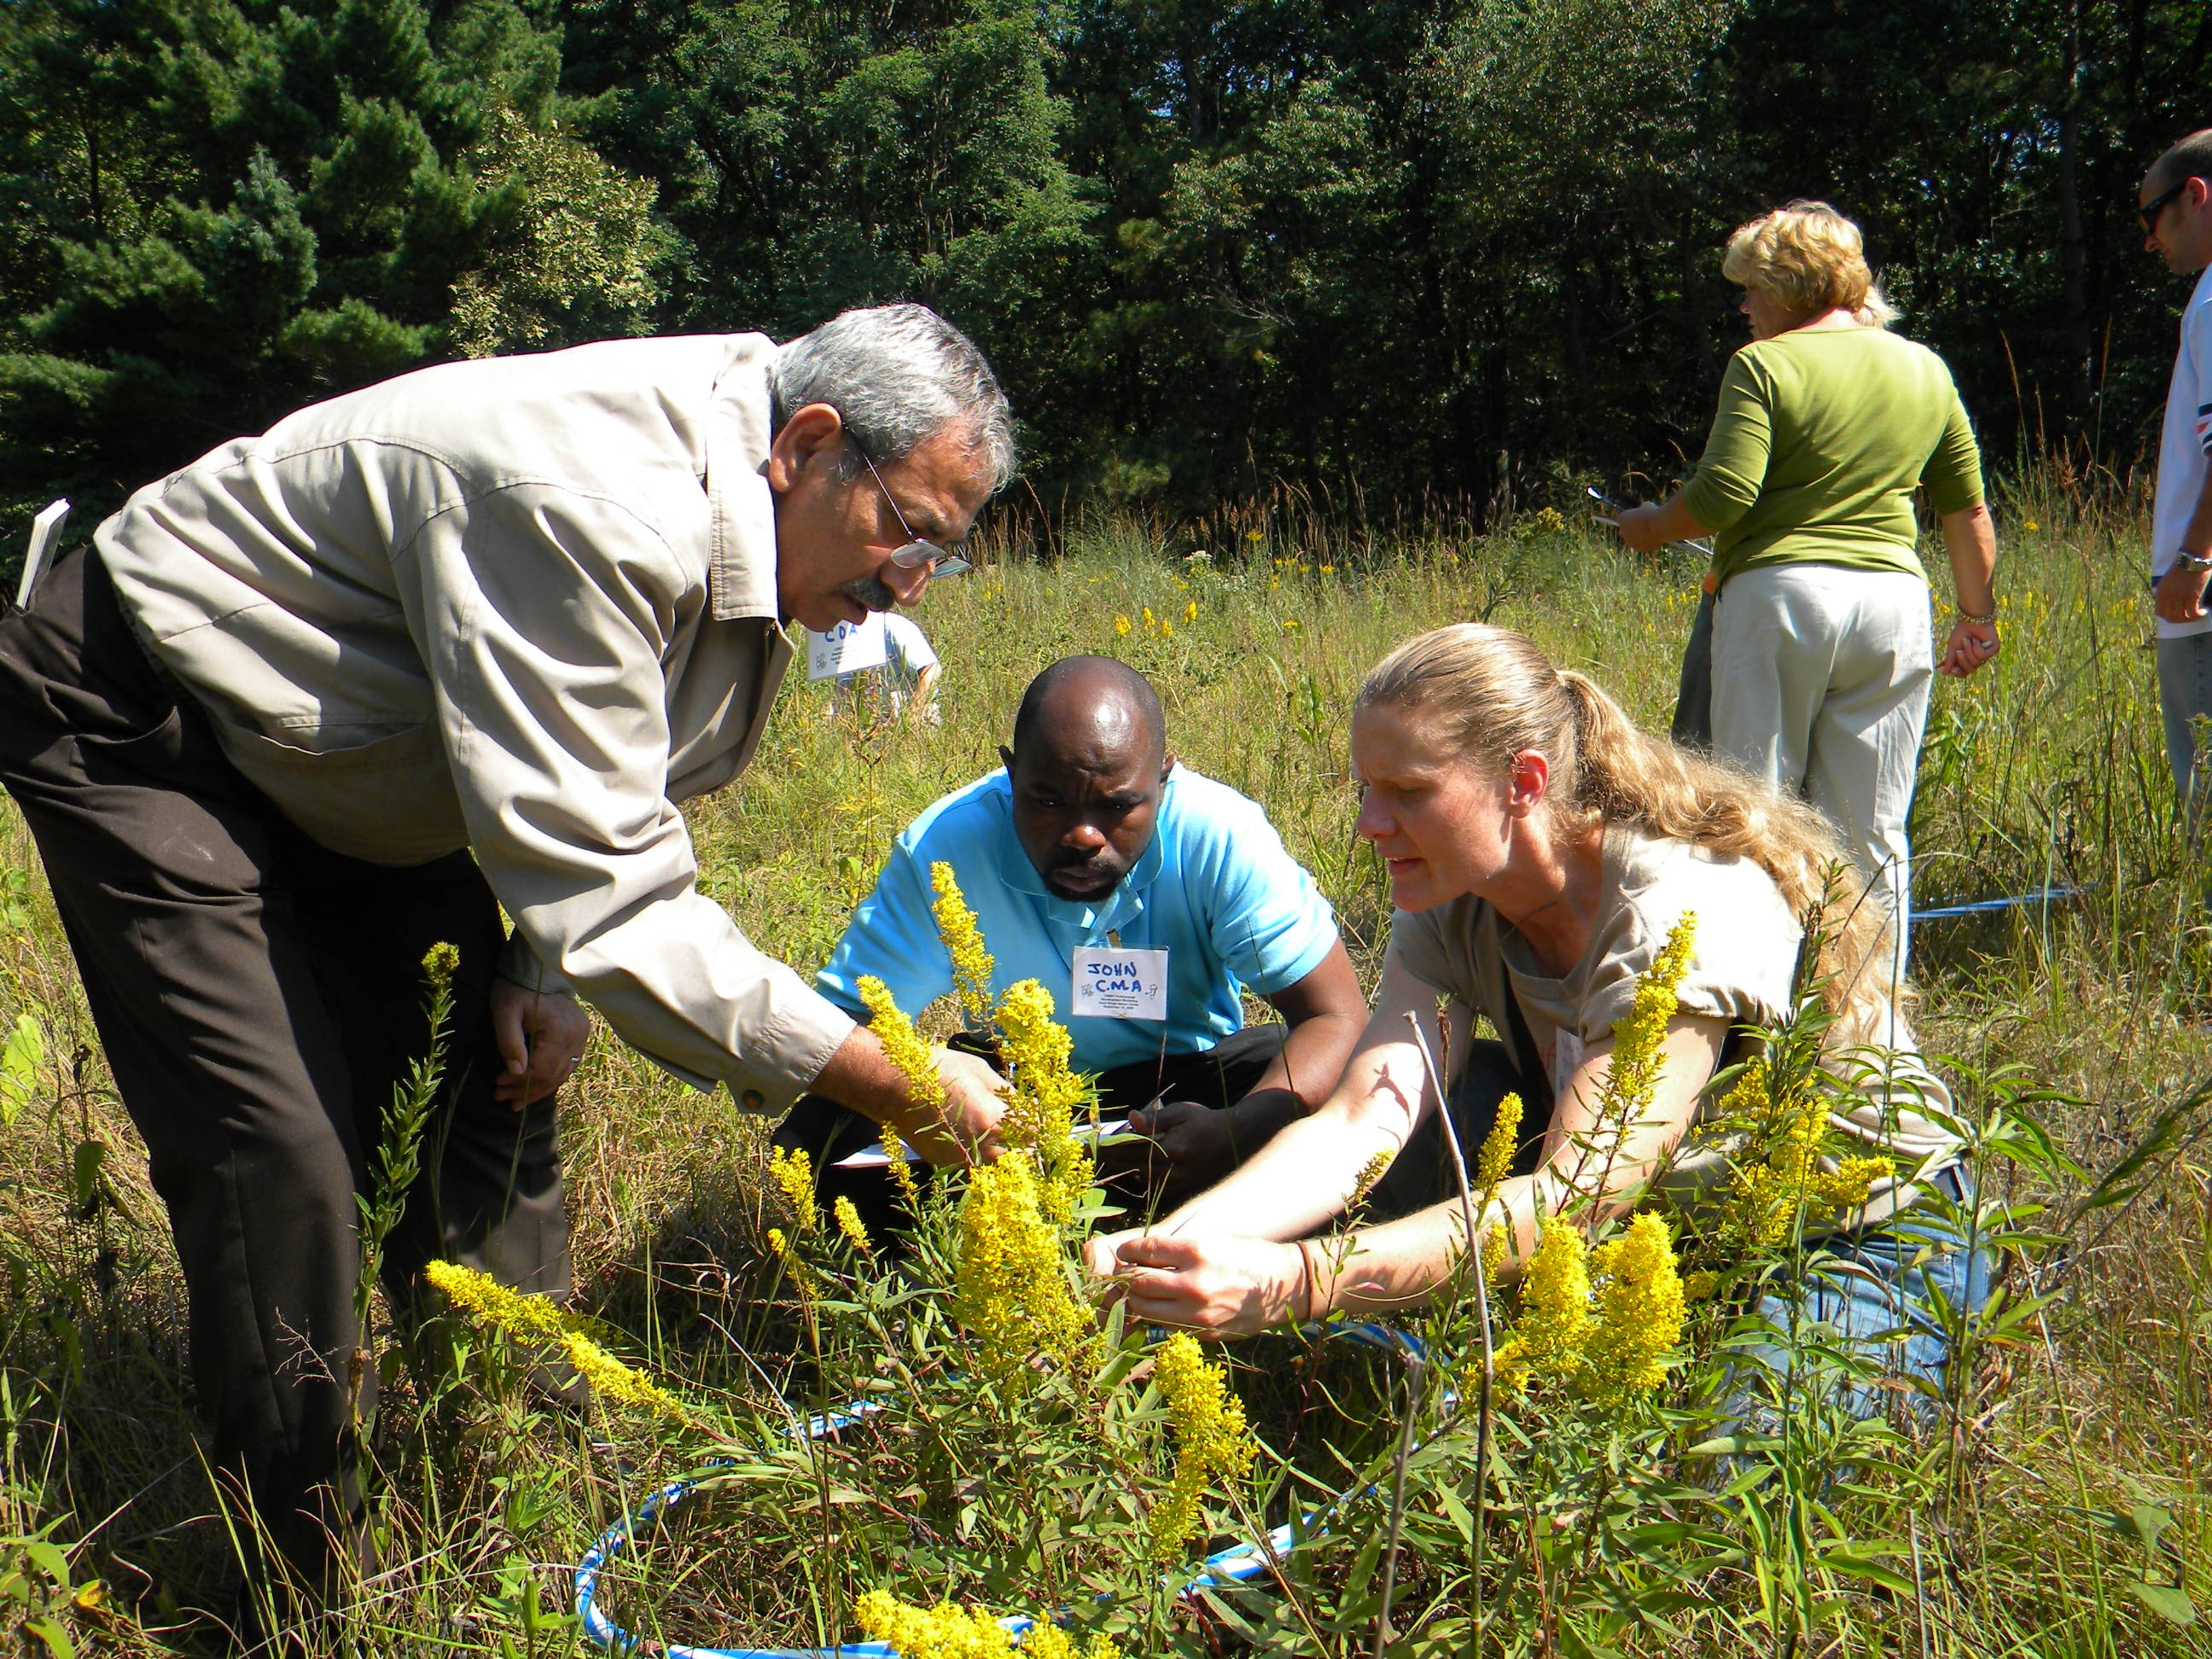 Working together, three adults, two men and one woman, examine prairie plants together.